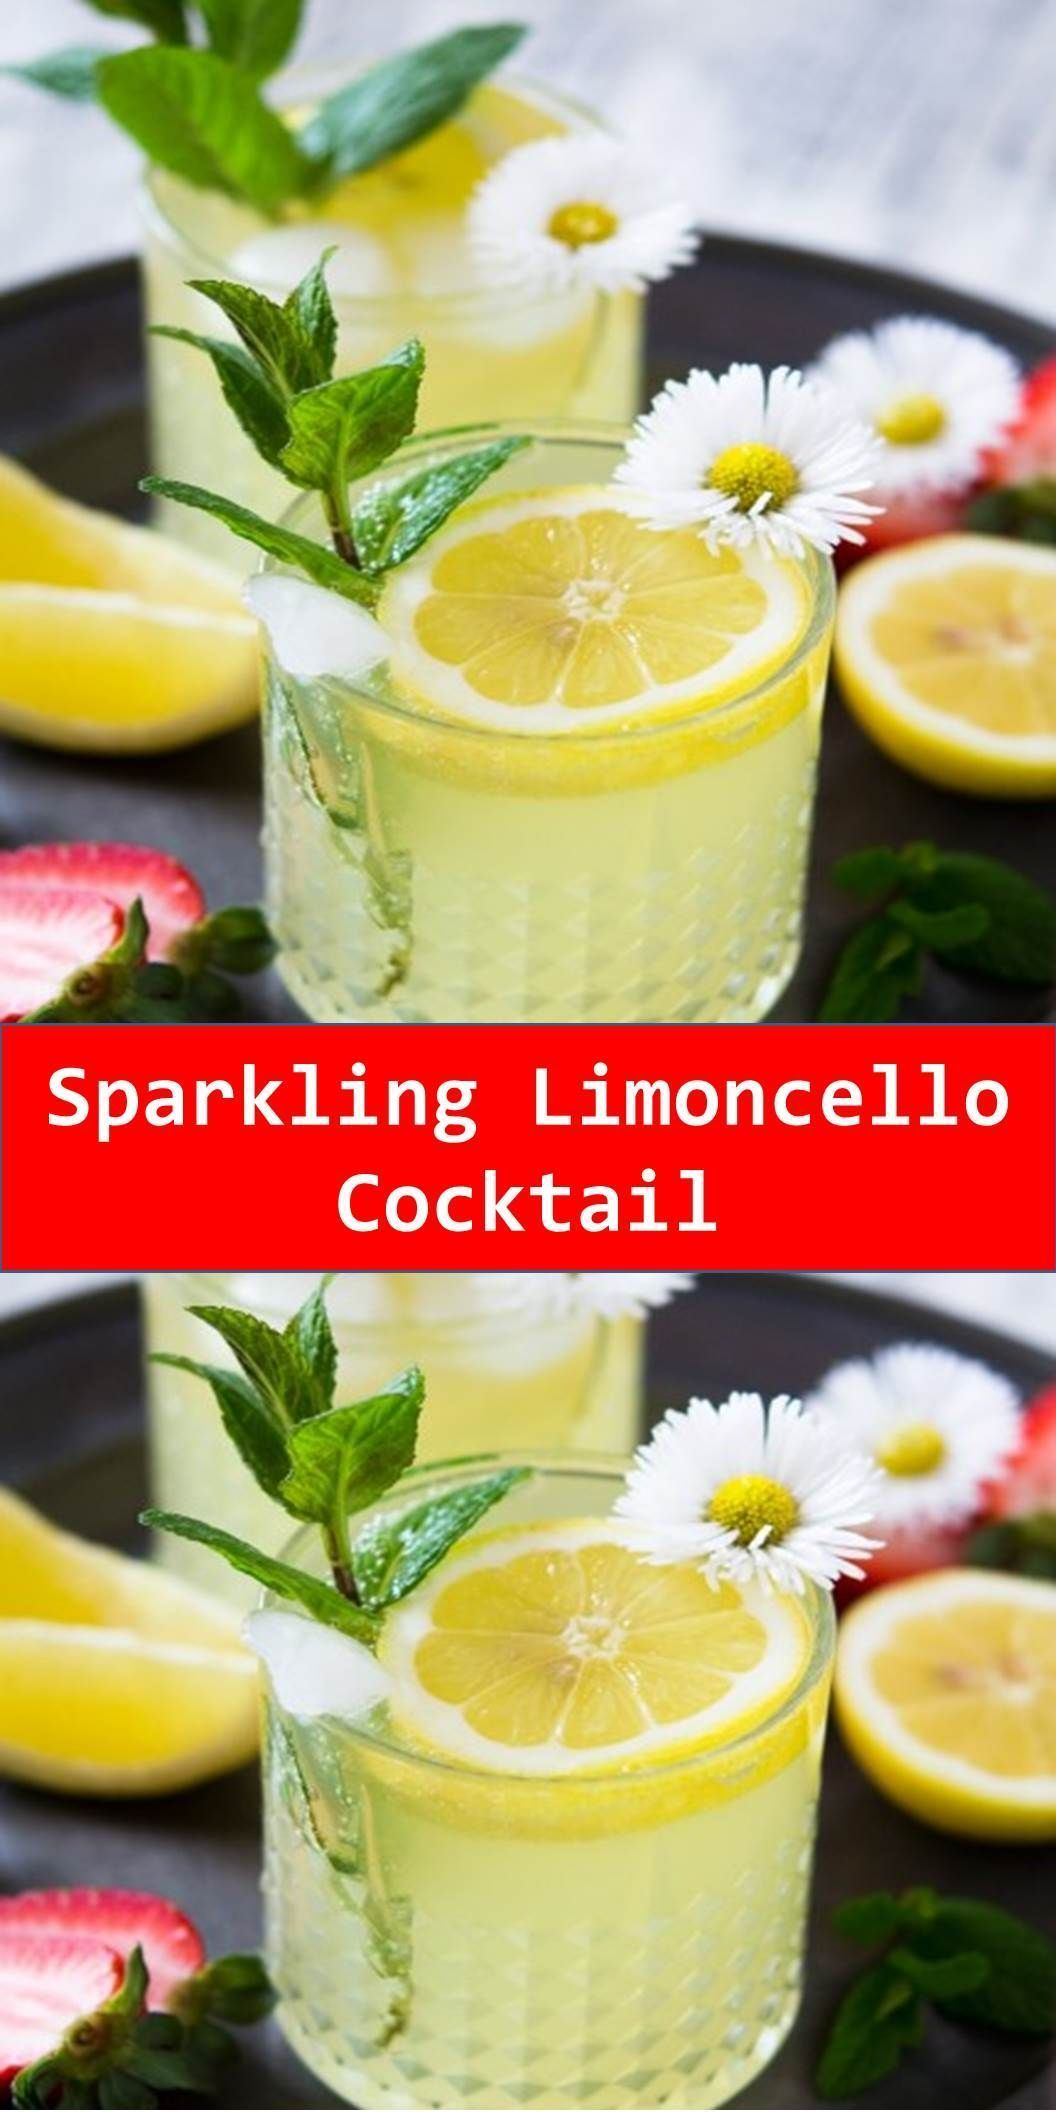 #Drink #Sparkling #Limoncello #Cocktail Your family's favorite food and drink ! Sparkling Limoncello Cocktail A juicy and refreshing sparkling limoncello cocktail made with only 3 simple ingredients. #limoncellococktails #Drink #Sparkling #Limoncello #Cocktail Your family's favorite food and drink ! Sparkling Limoncello Cocktail A juicy and refreshing sparkling limoncello cocktail made with only 3 simple ingredients. #limoncellococktails #Drink #Sparkling #Limoncello #Cocktail Your family's favo #limoncellococktails